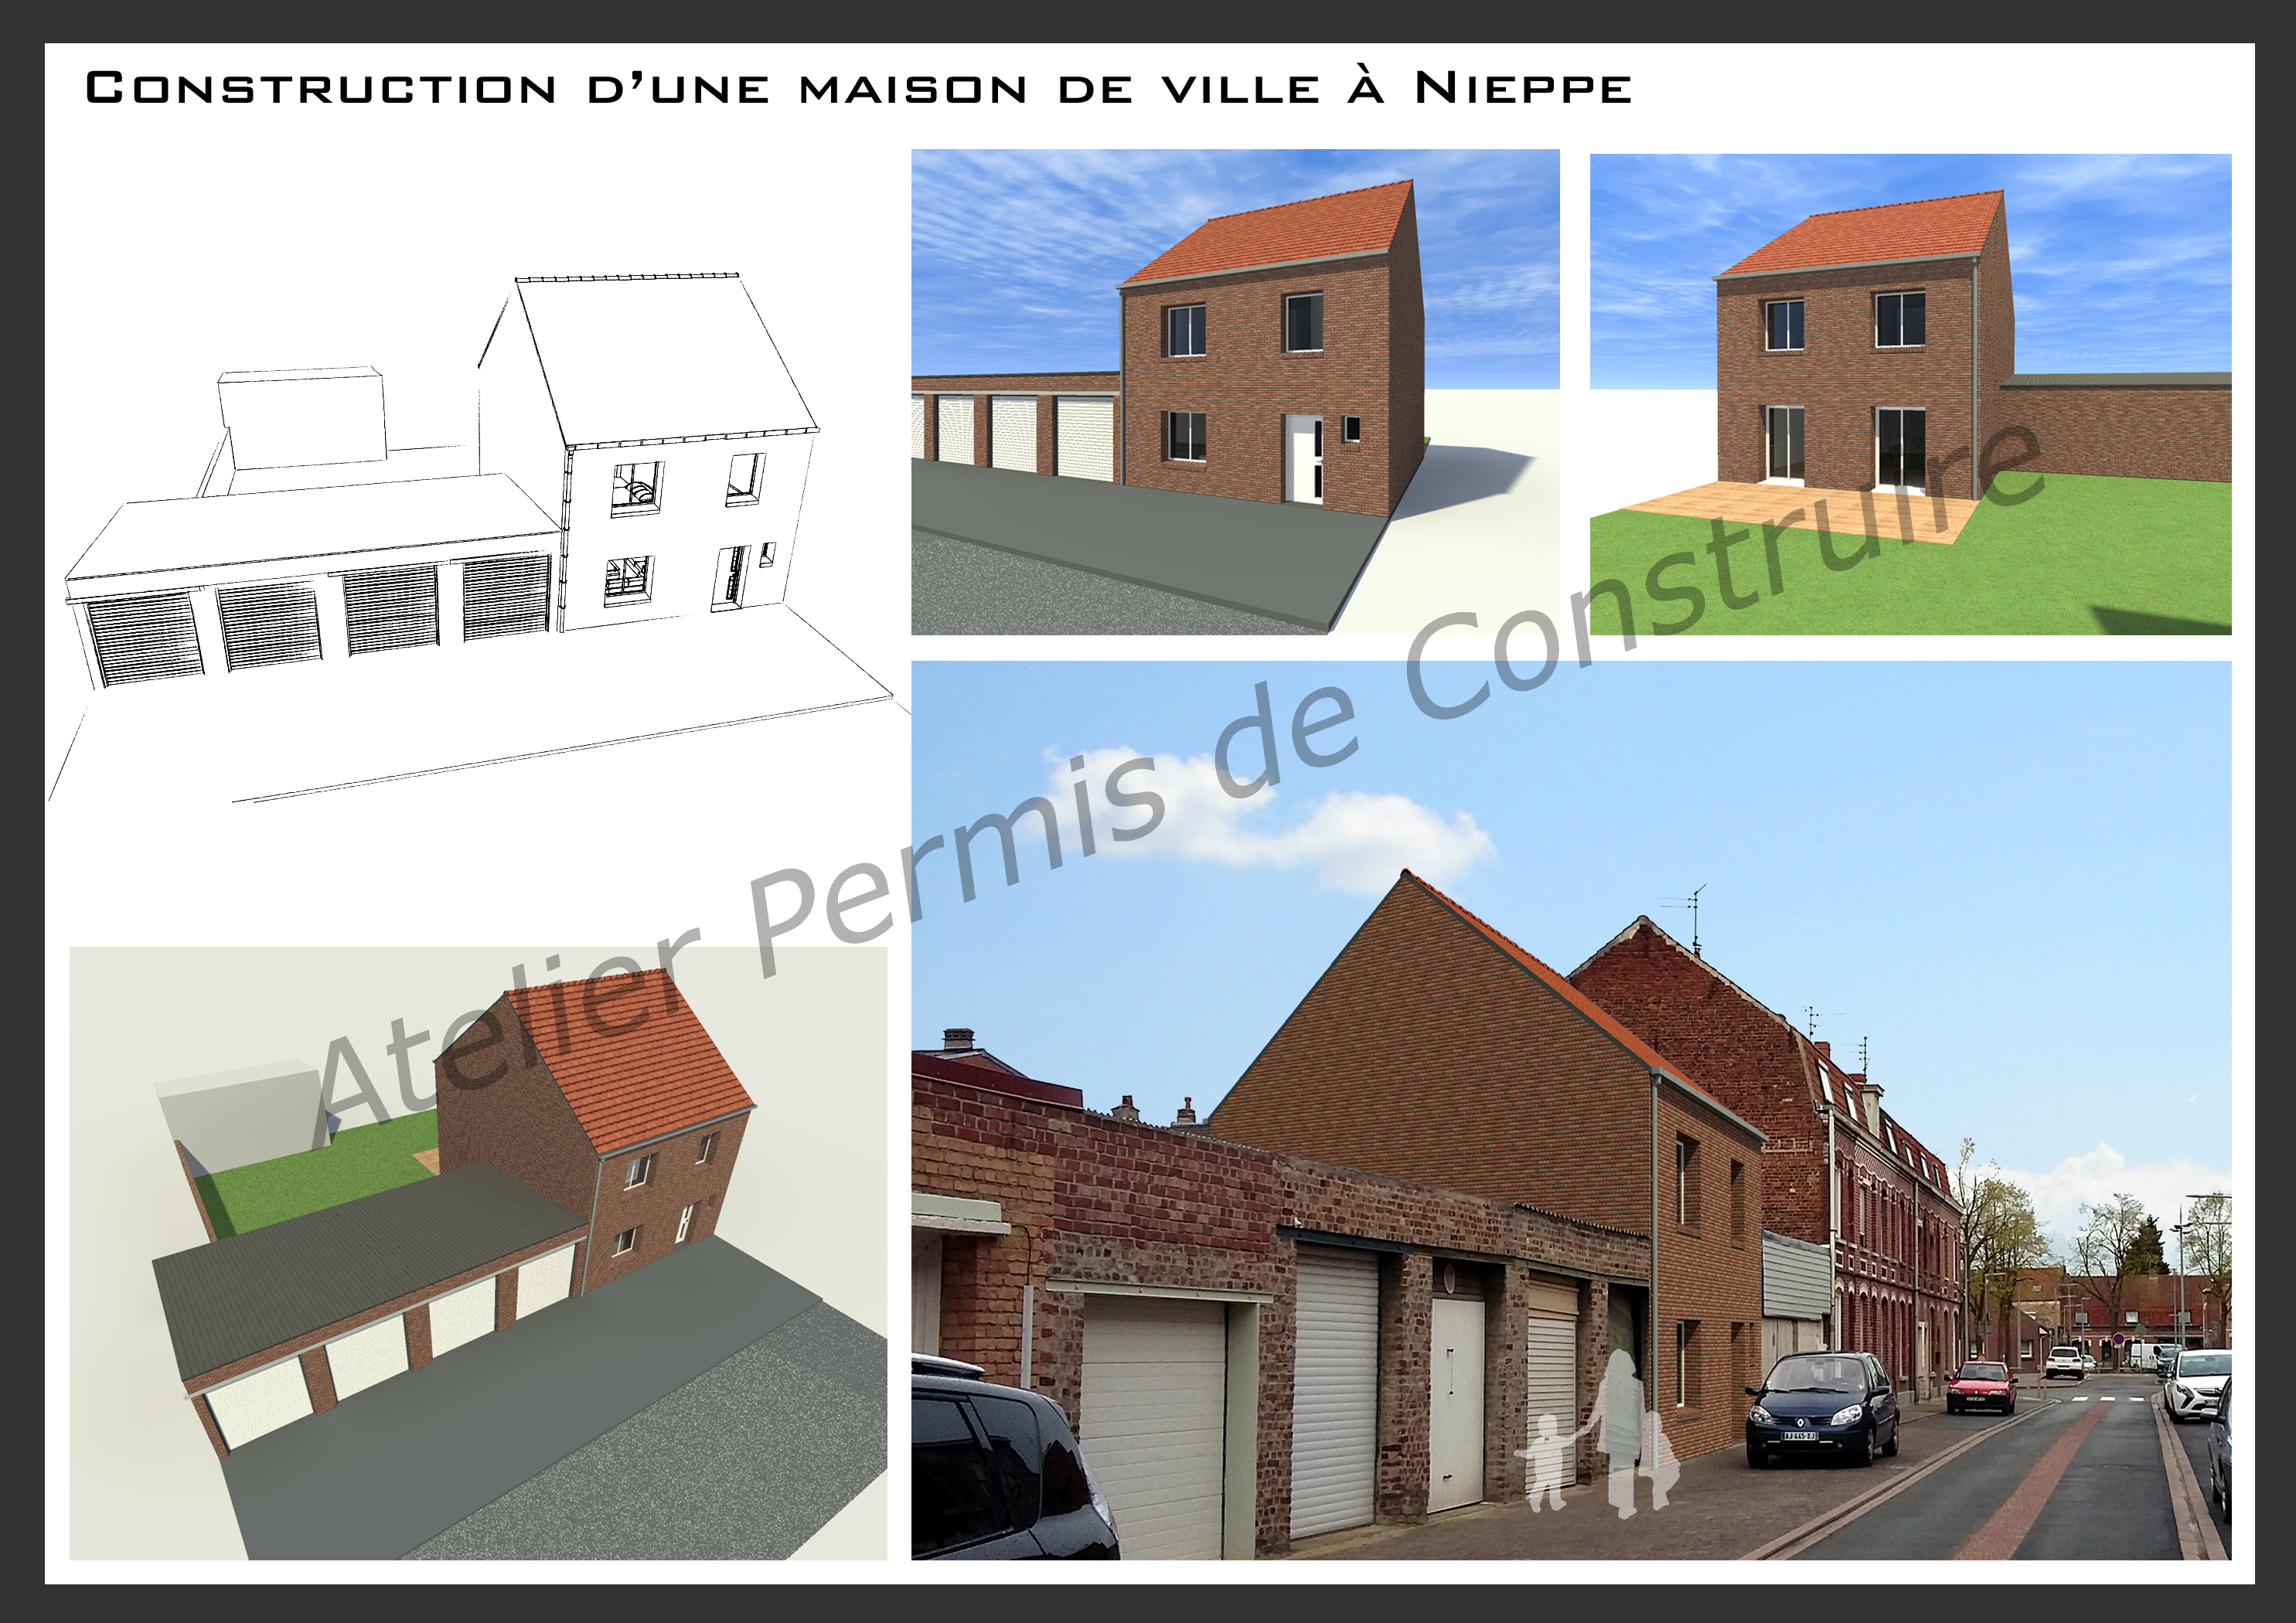 D molition de 2 garages construction d 39 une maison nieppe - Construction garage permis de construire ...